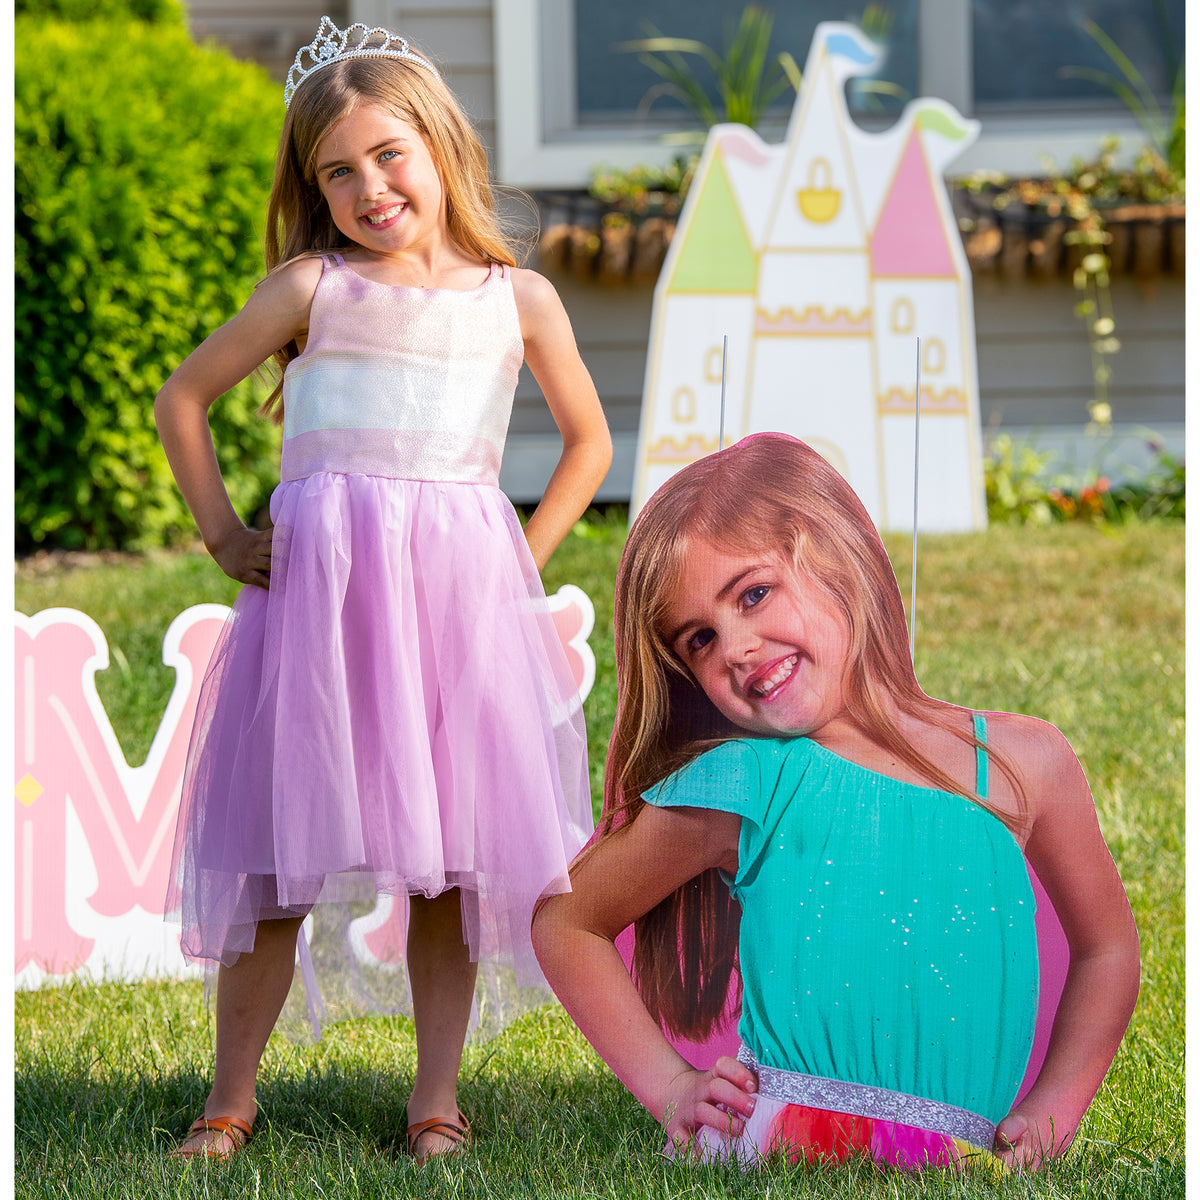 24 in. to 36 in. Girl Birthday Custom Photo Cutout Yard Sign